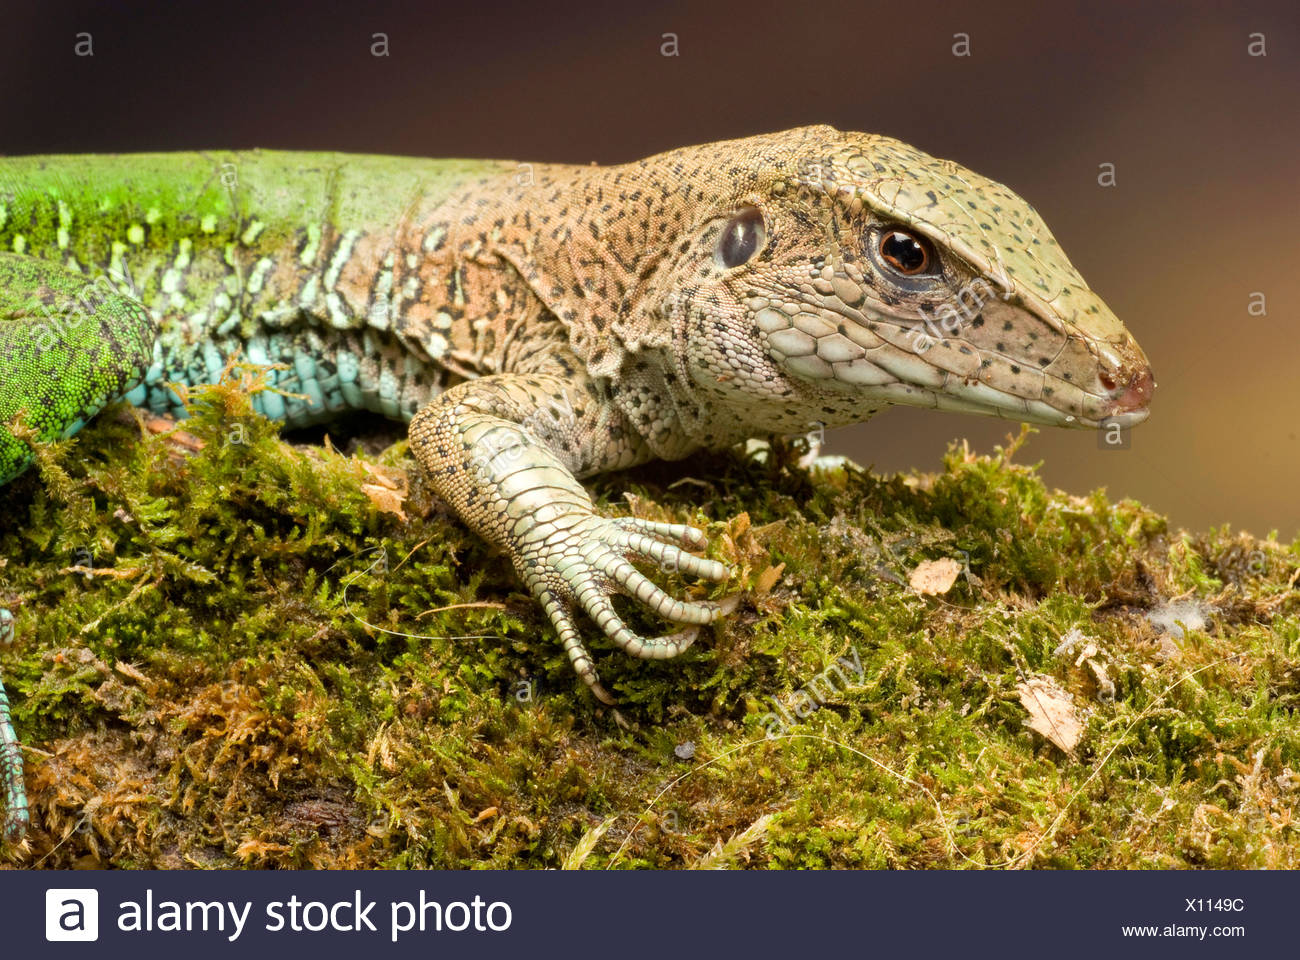 Jungle runner (Ameiva ameiva), portrait Photo Stock